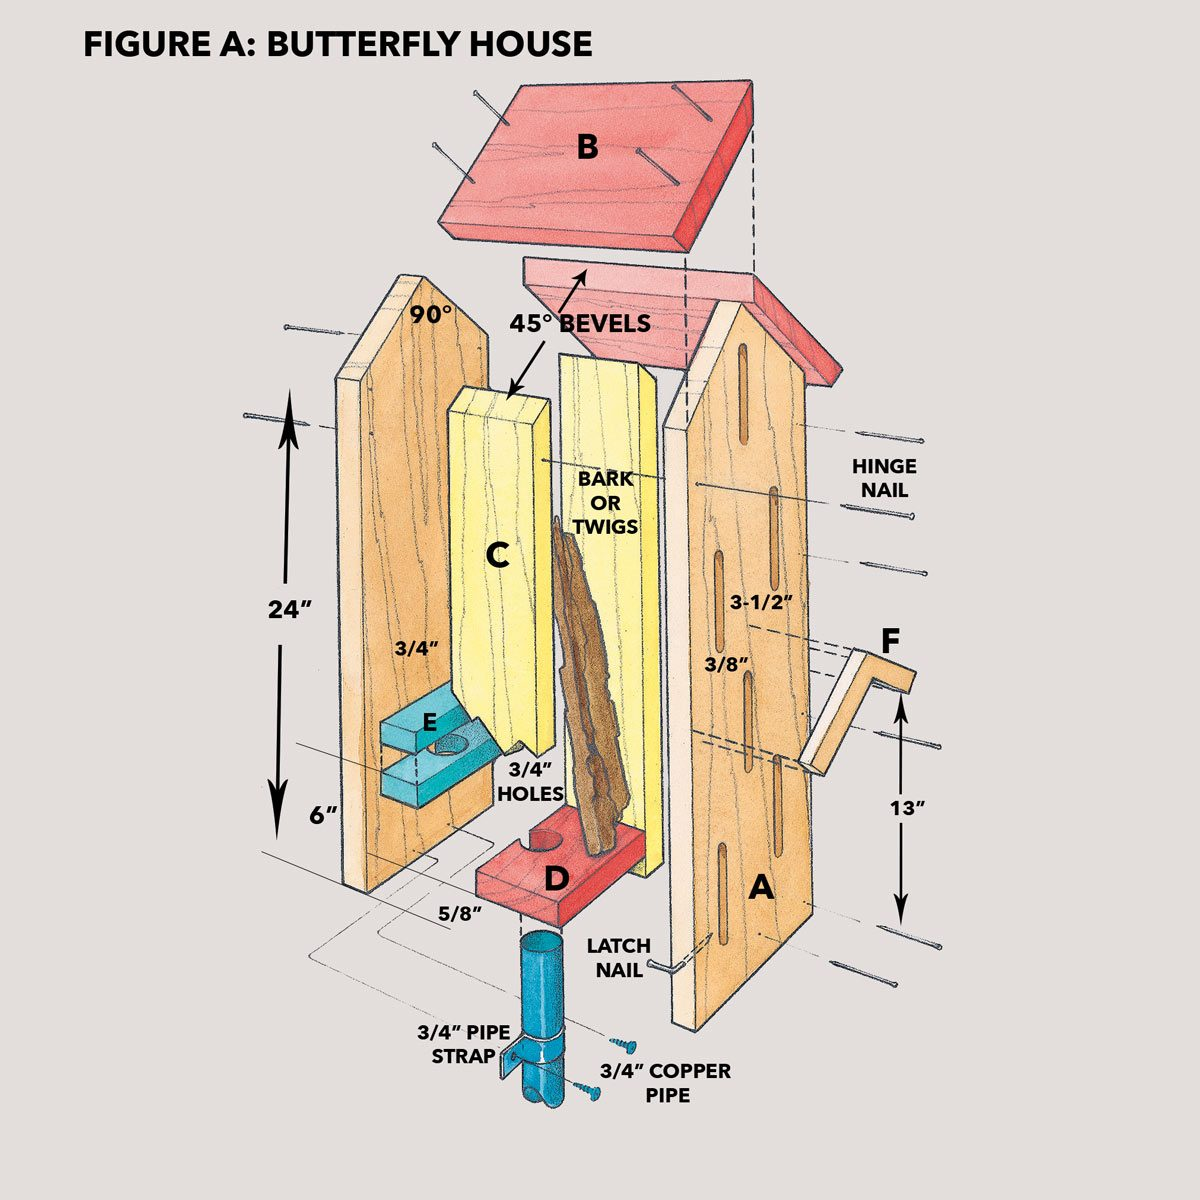 DIY Butterfly house figure a